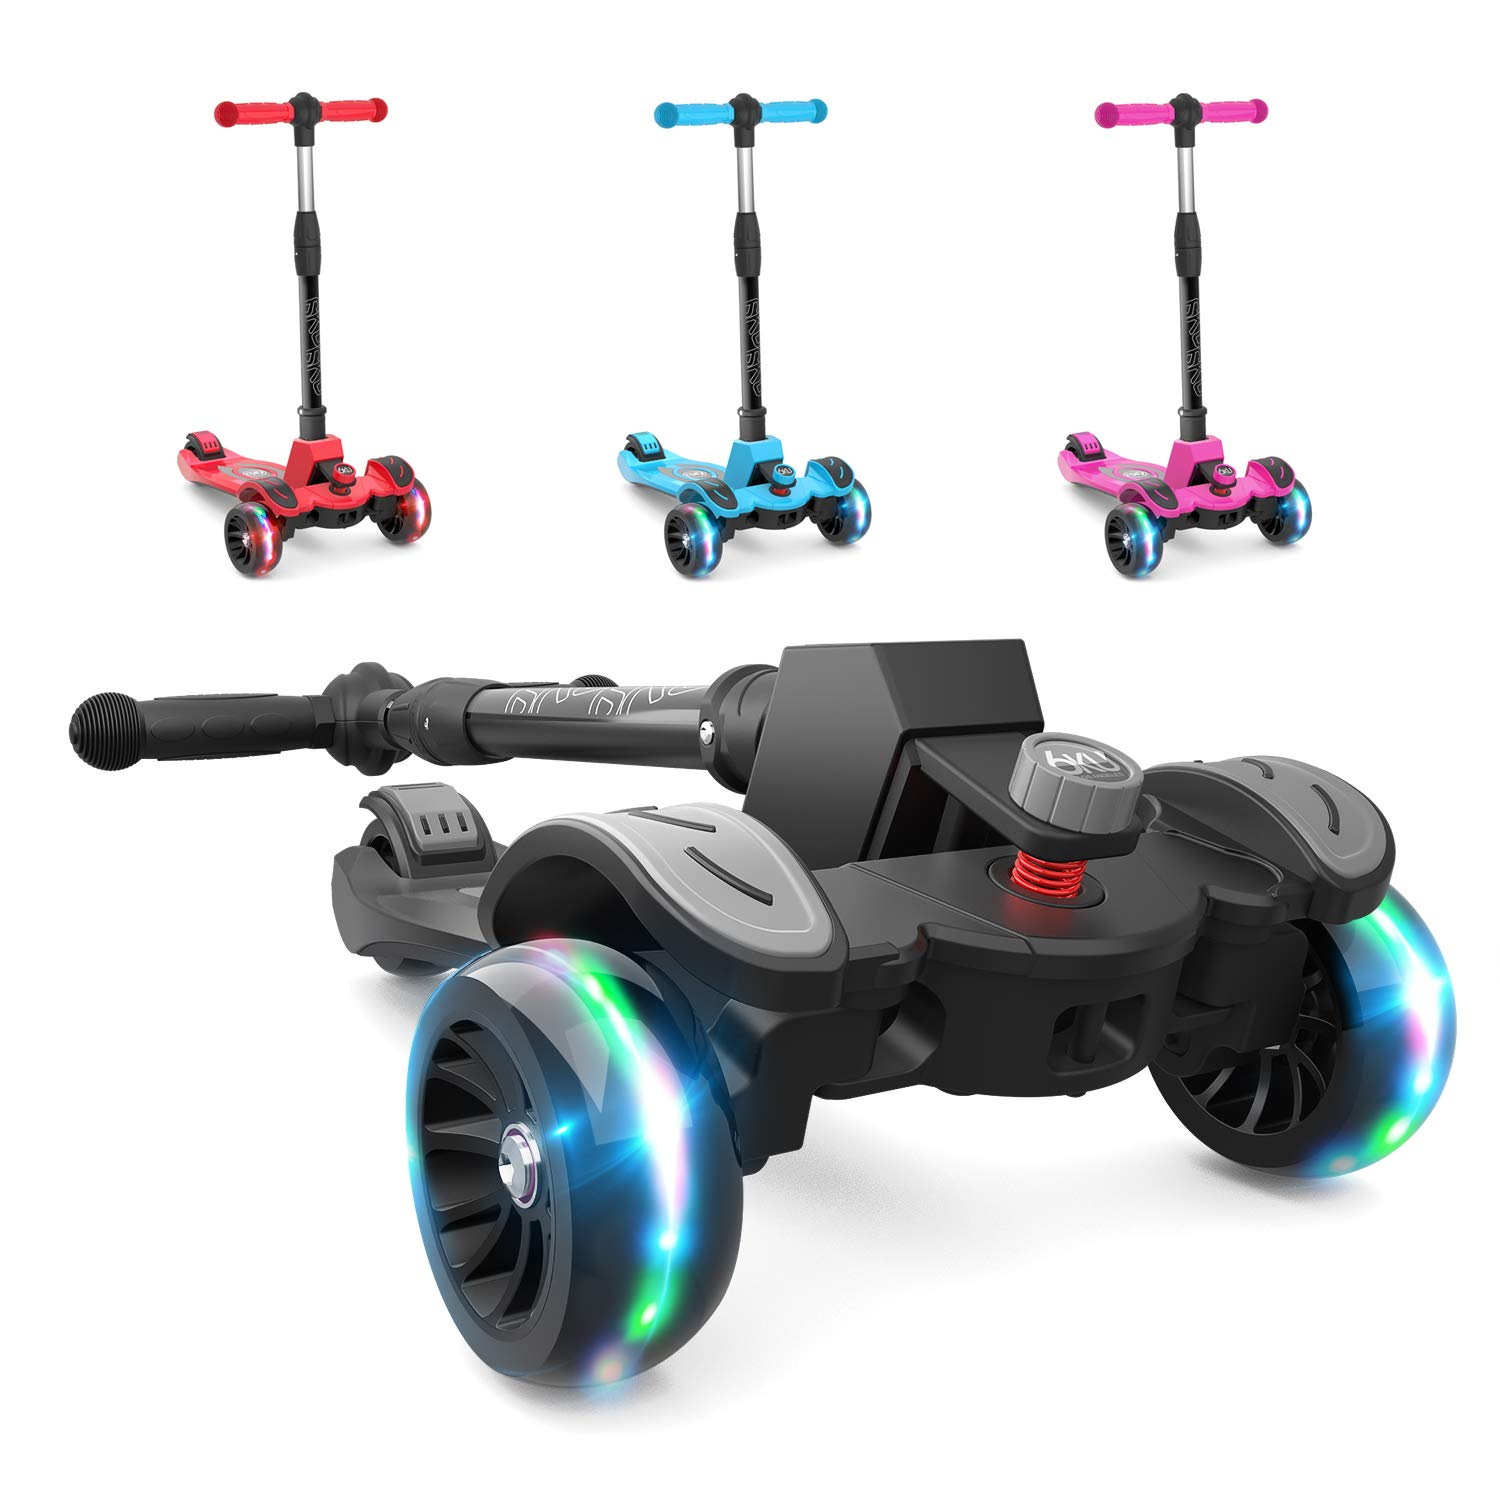 6KU Kids Kick Scooter with Adjustable Height, Lean to Steer, Flashing Wheels for Children 3-8 Years Old Black by 6KU (Image #1)